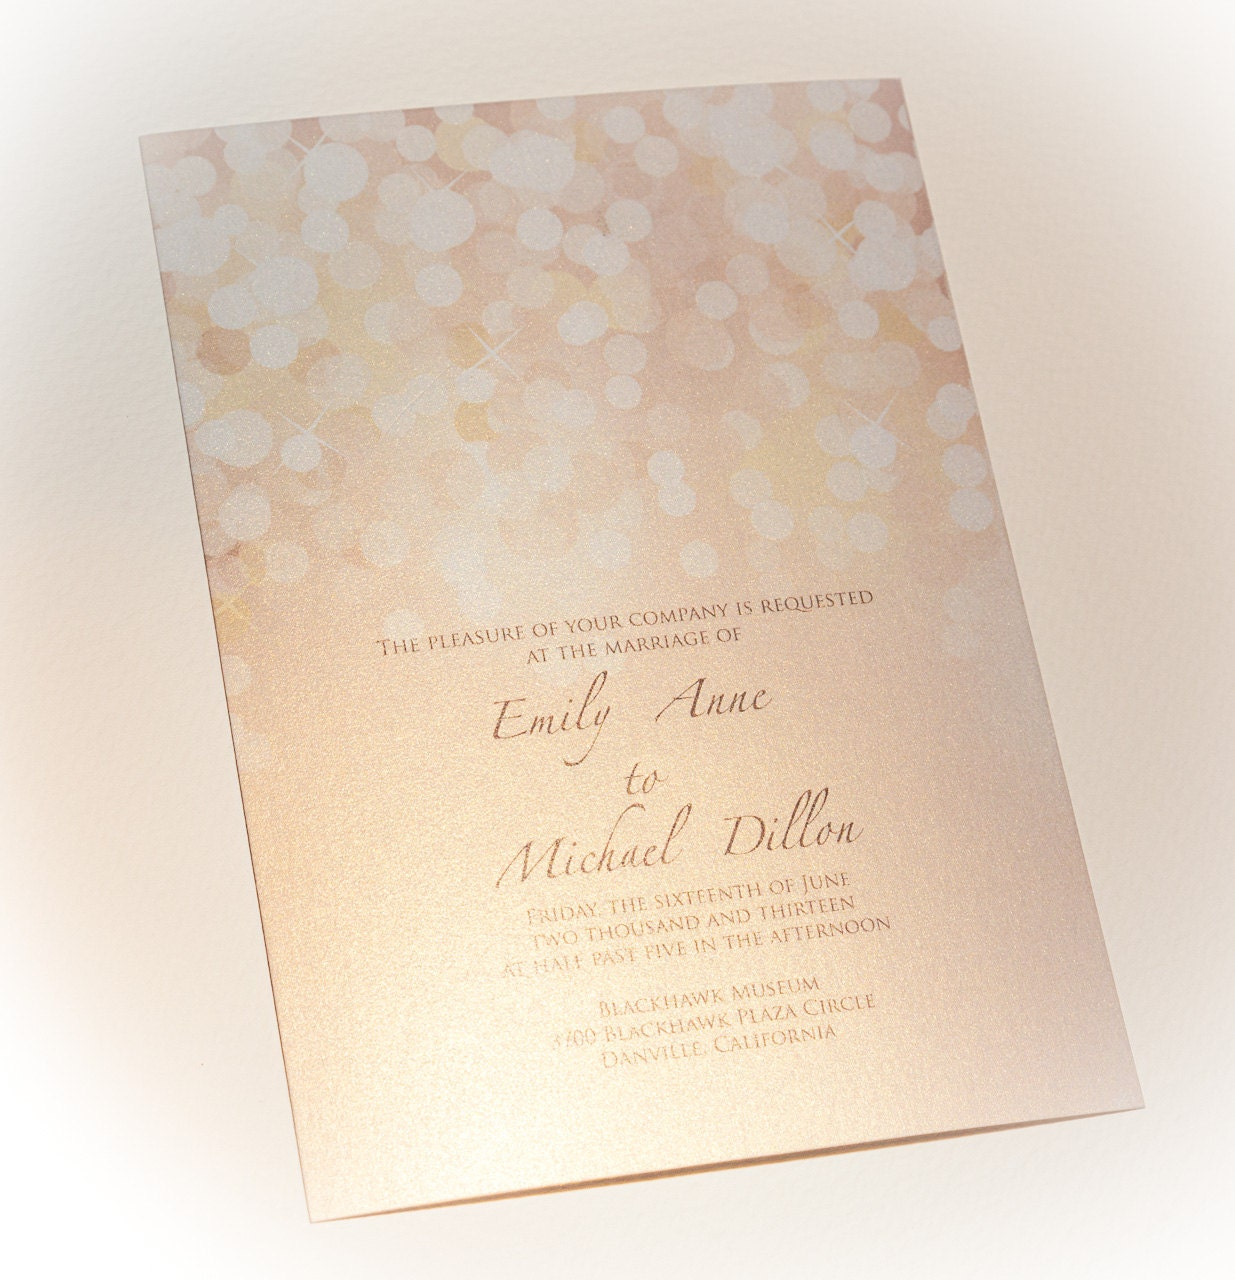 printing wedding invitations on photo paper - 28 images - wedding ...